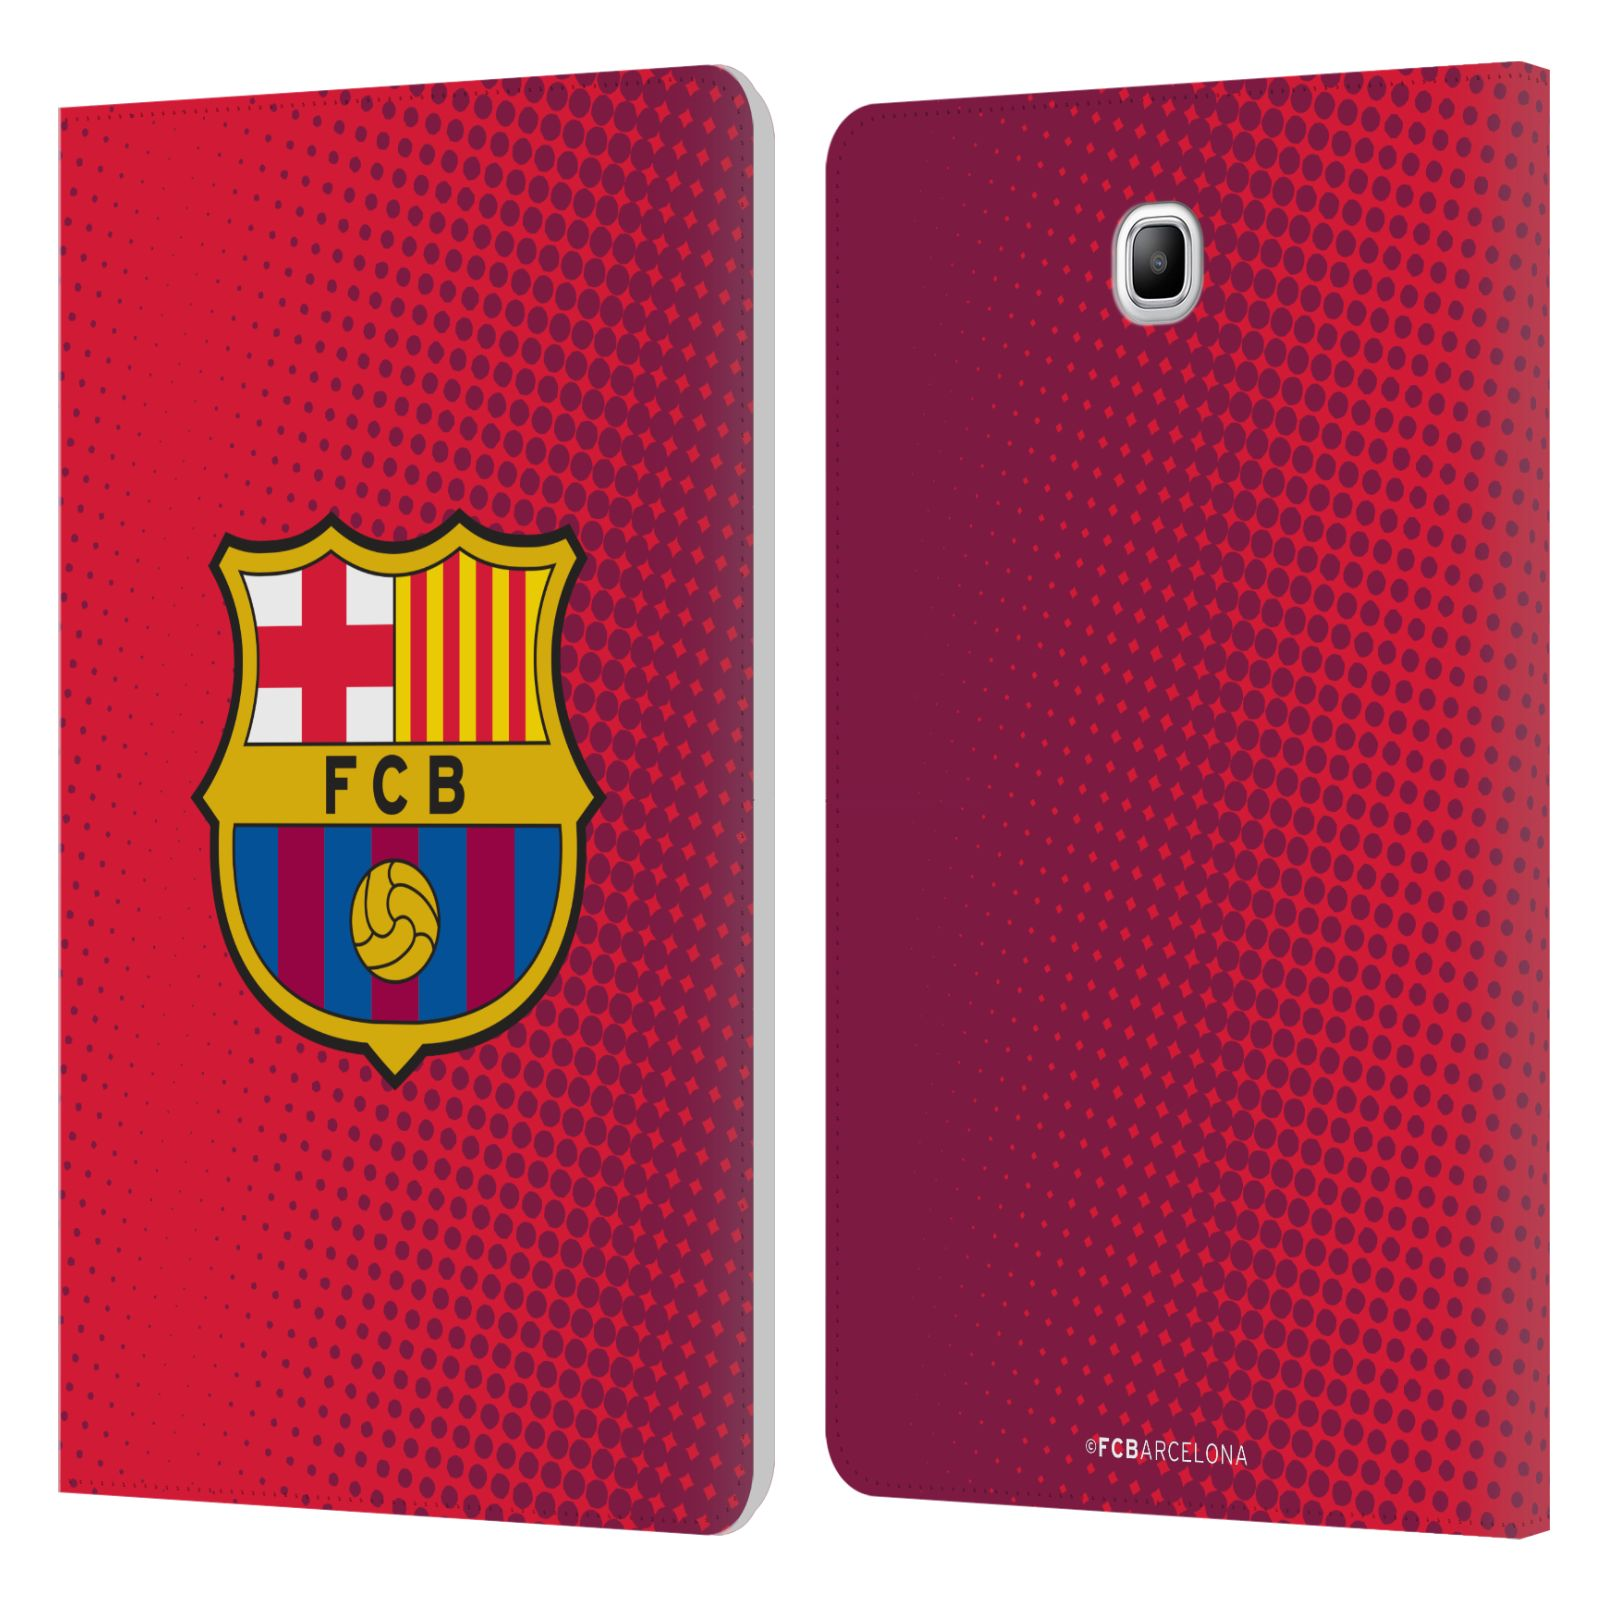 OFFICIAL-FC-BARCELONA-2017-18-CREST-LEATHER-BOOK-CASE-FOR-SAMSUNG-GALAXY-TABLETS